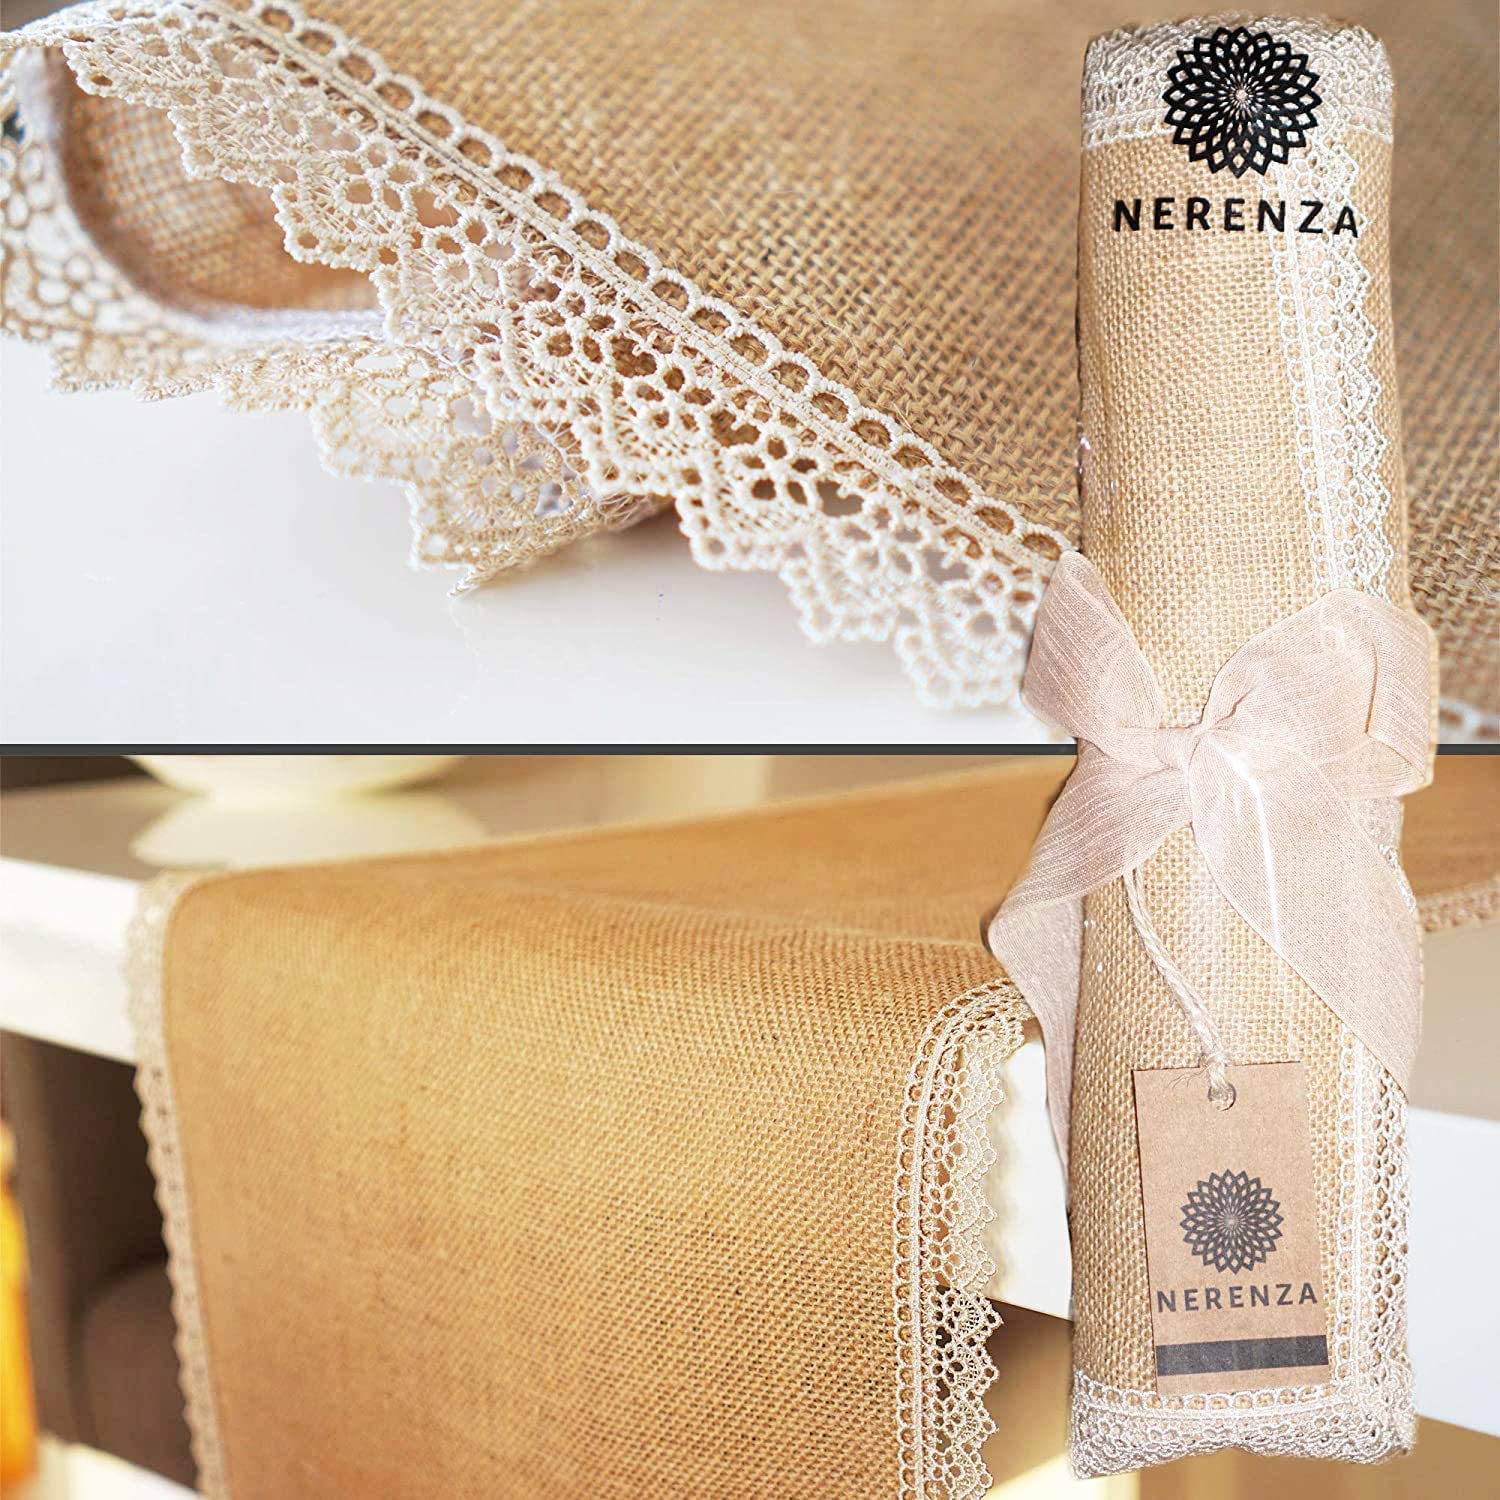 Amazon Com Nerenza Burlap Table Runner With Lace Farmhouse Natural Jute Thanksgiving Decorations Rustic Wedding 13 X 48 Home Kitchen